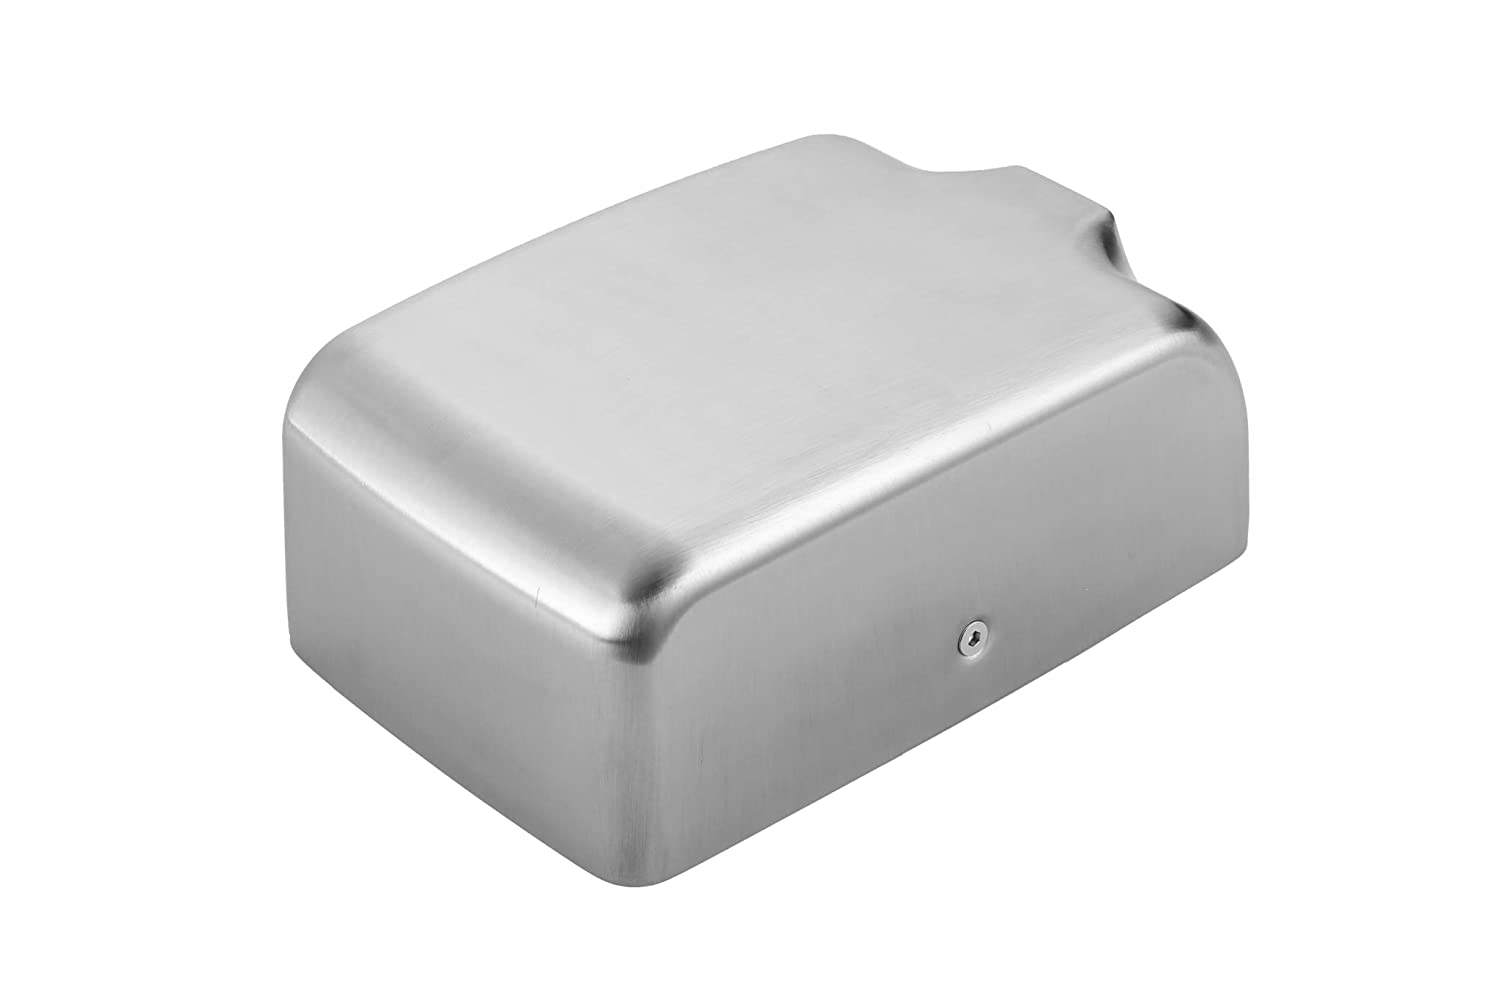 ASIALEO Ultrathin Automatic Electric Hand Dryer Commercial High Speed Instant Heat /& Dry for Bathrooms or Restrooms,Stainless Steel 304 Cover,Easy Installation